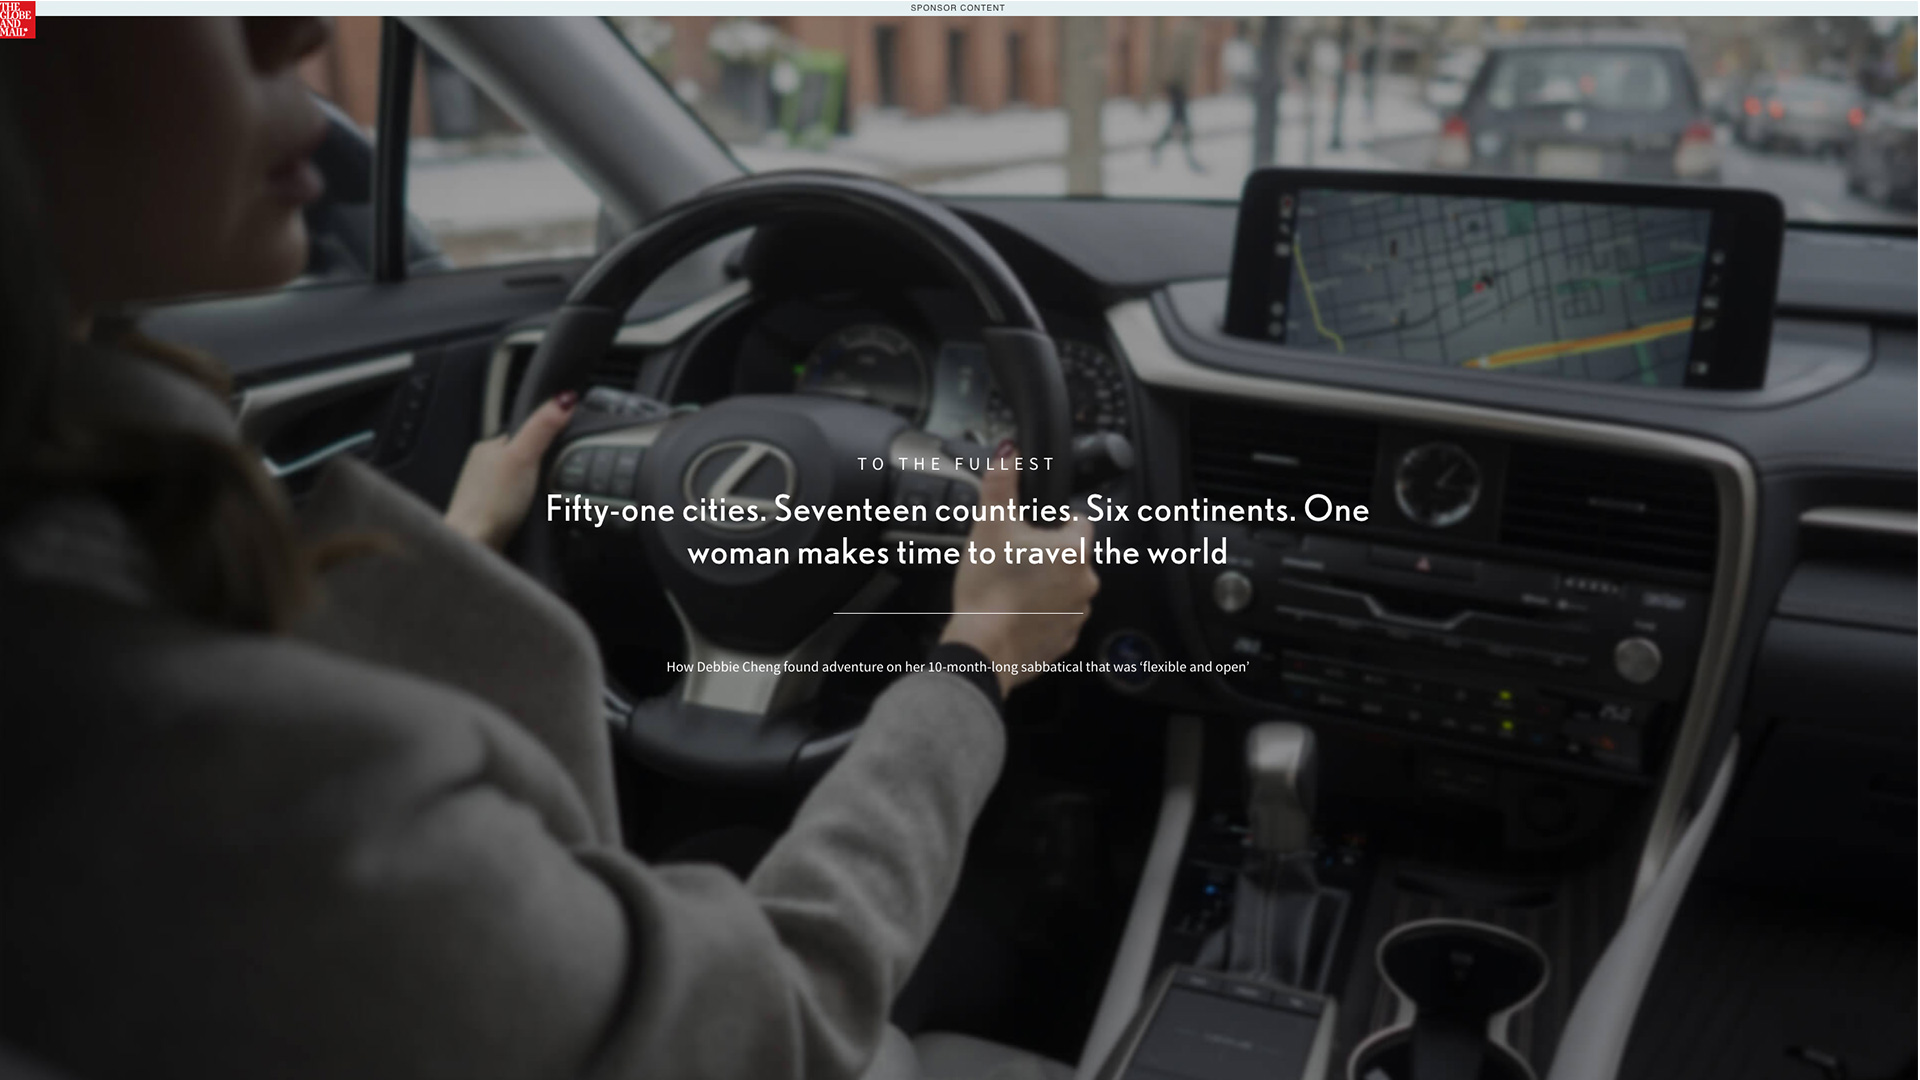 Lexus - digital custom content program with The Globe and Mail